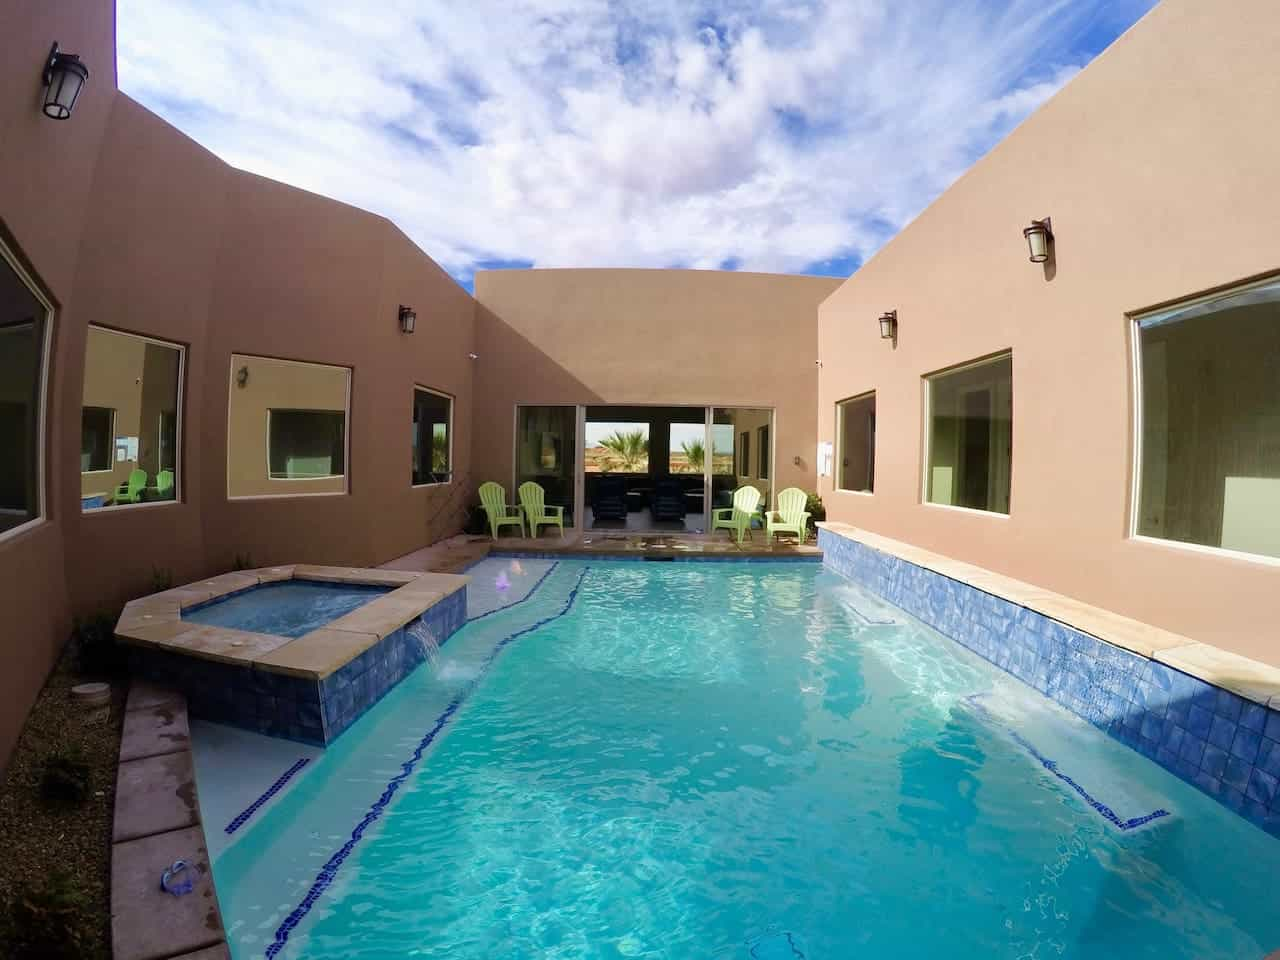 Image of Airbnb rental in Mesquite, Nevada